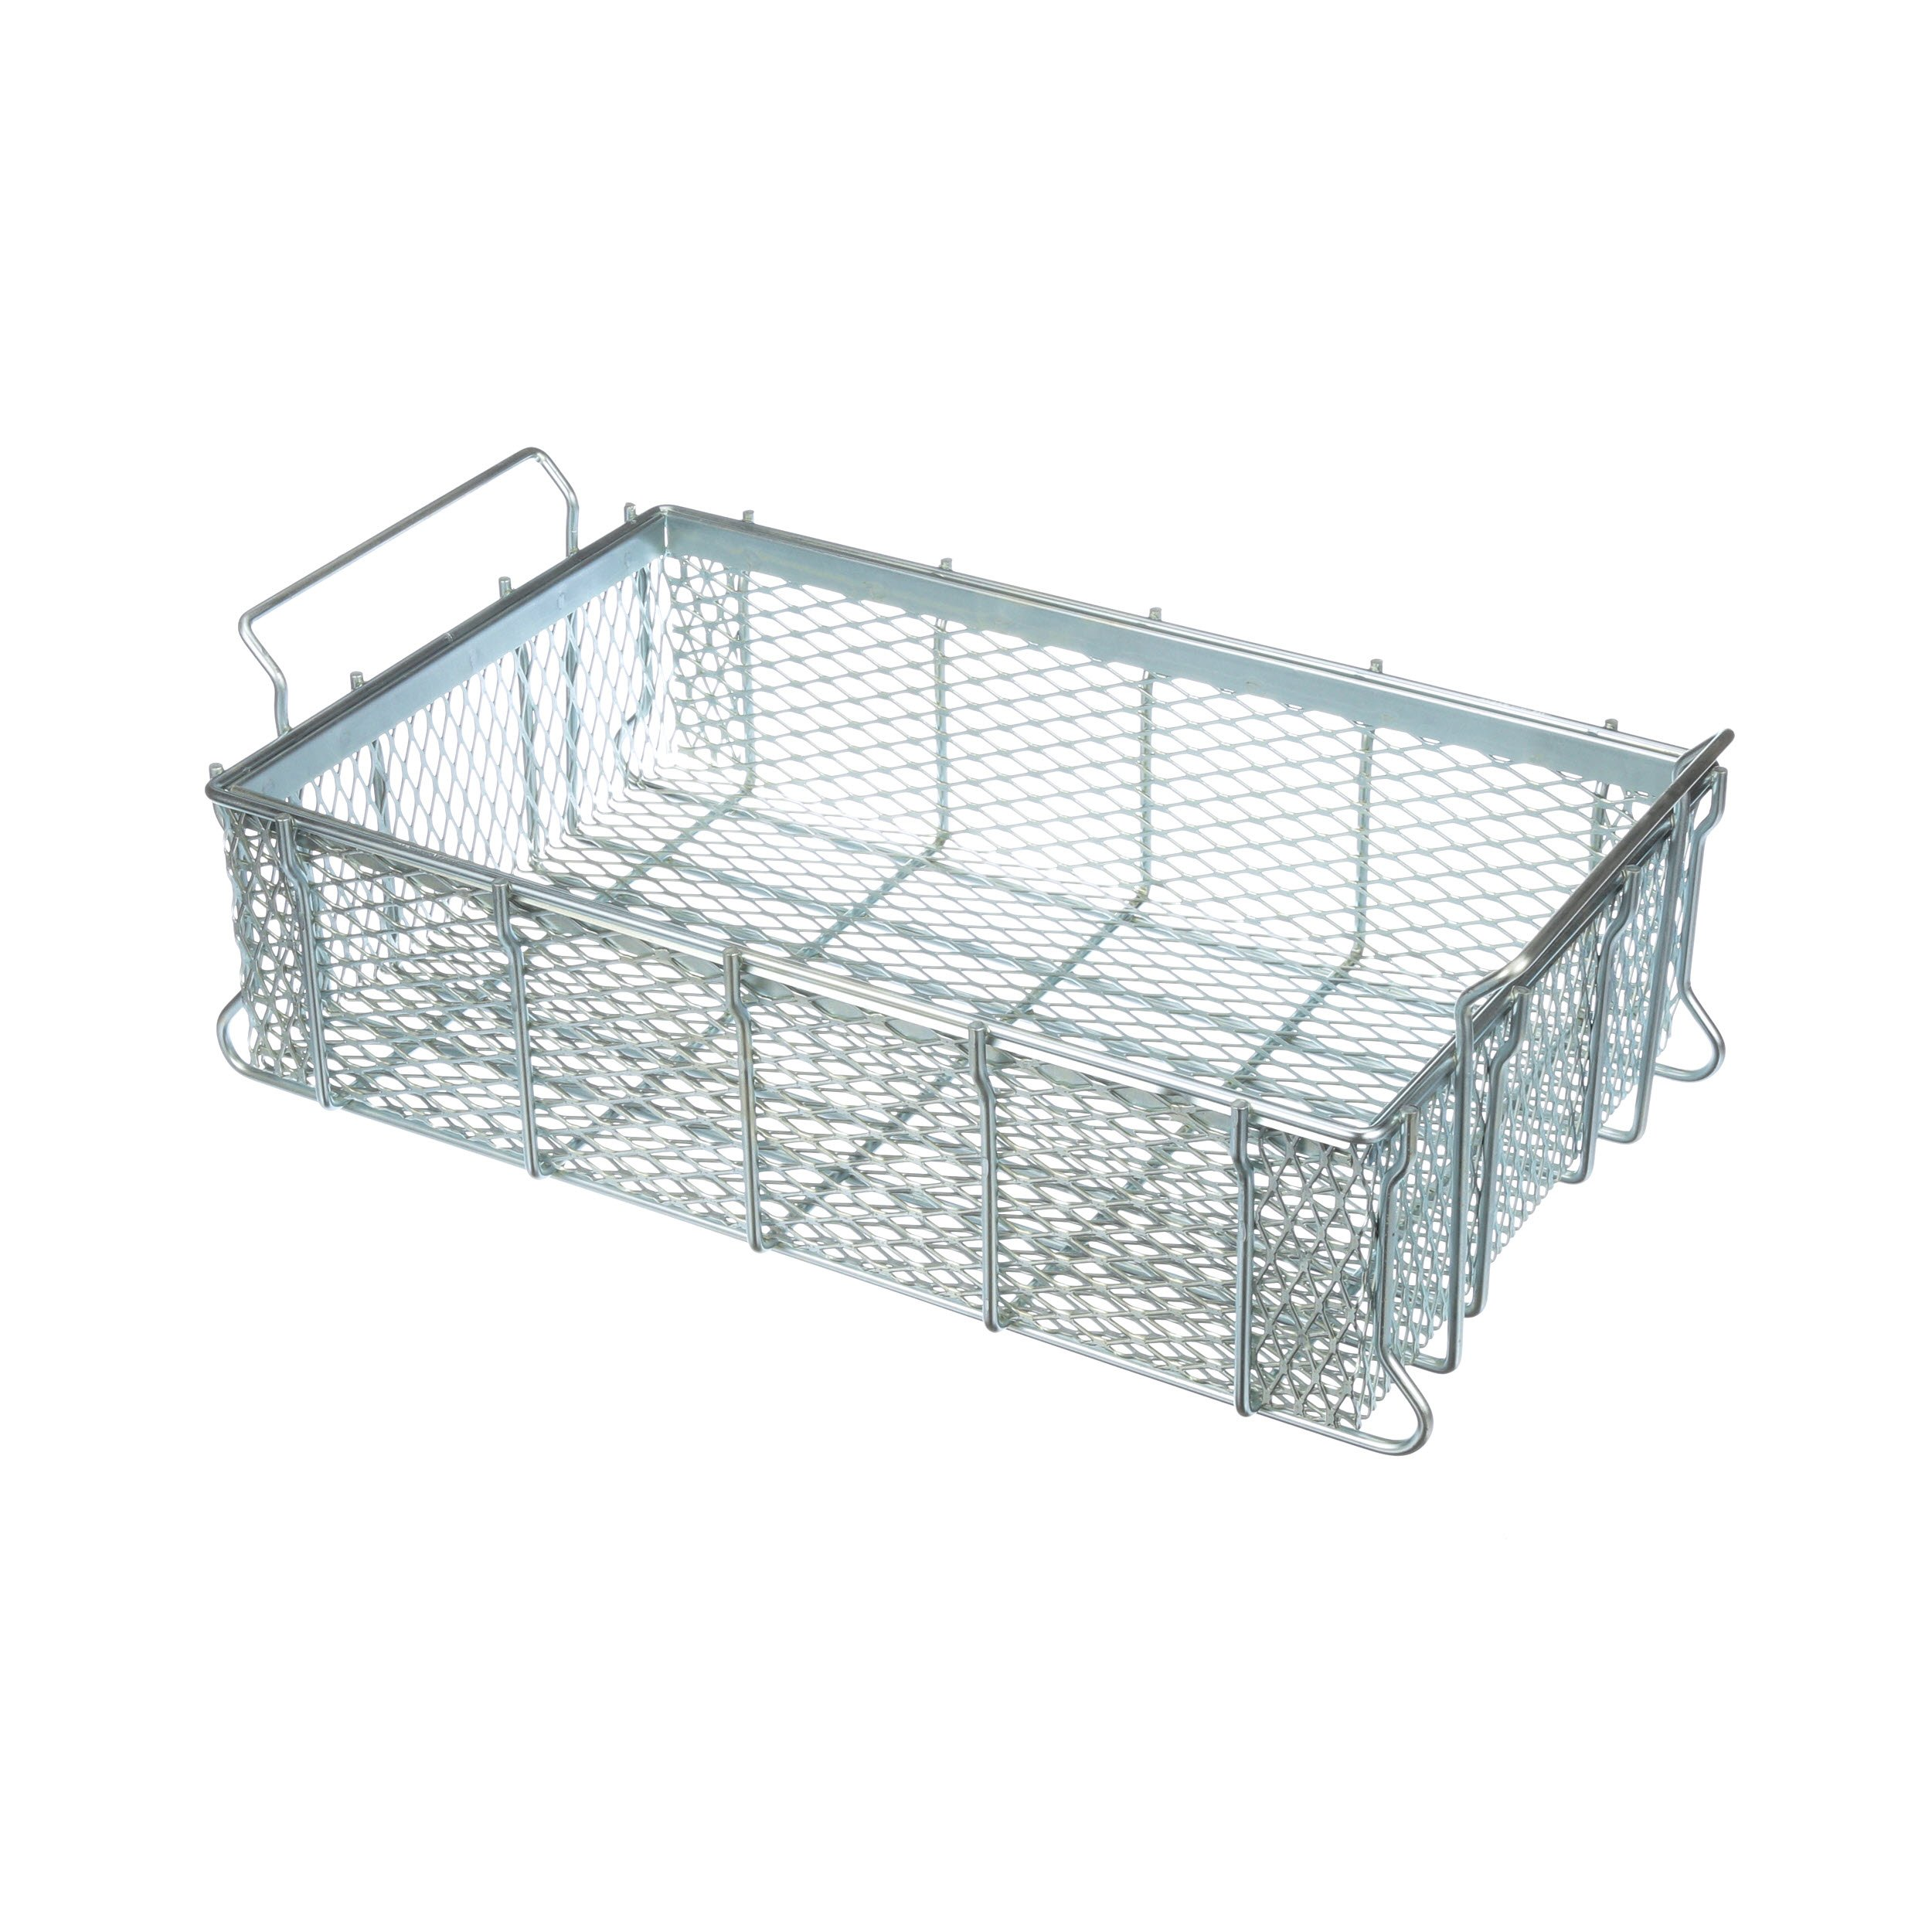 Different Uses for Stainless Steel Expanded Metal Baskets